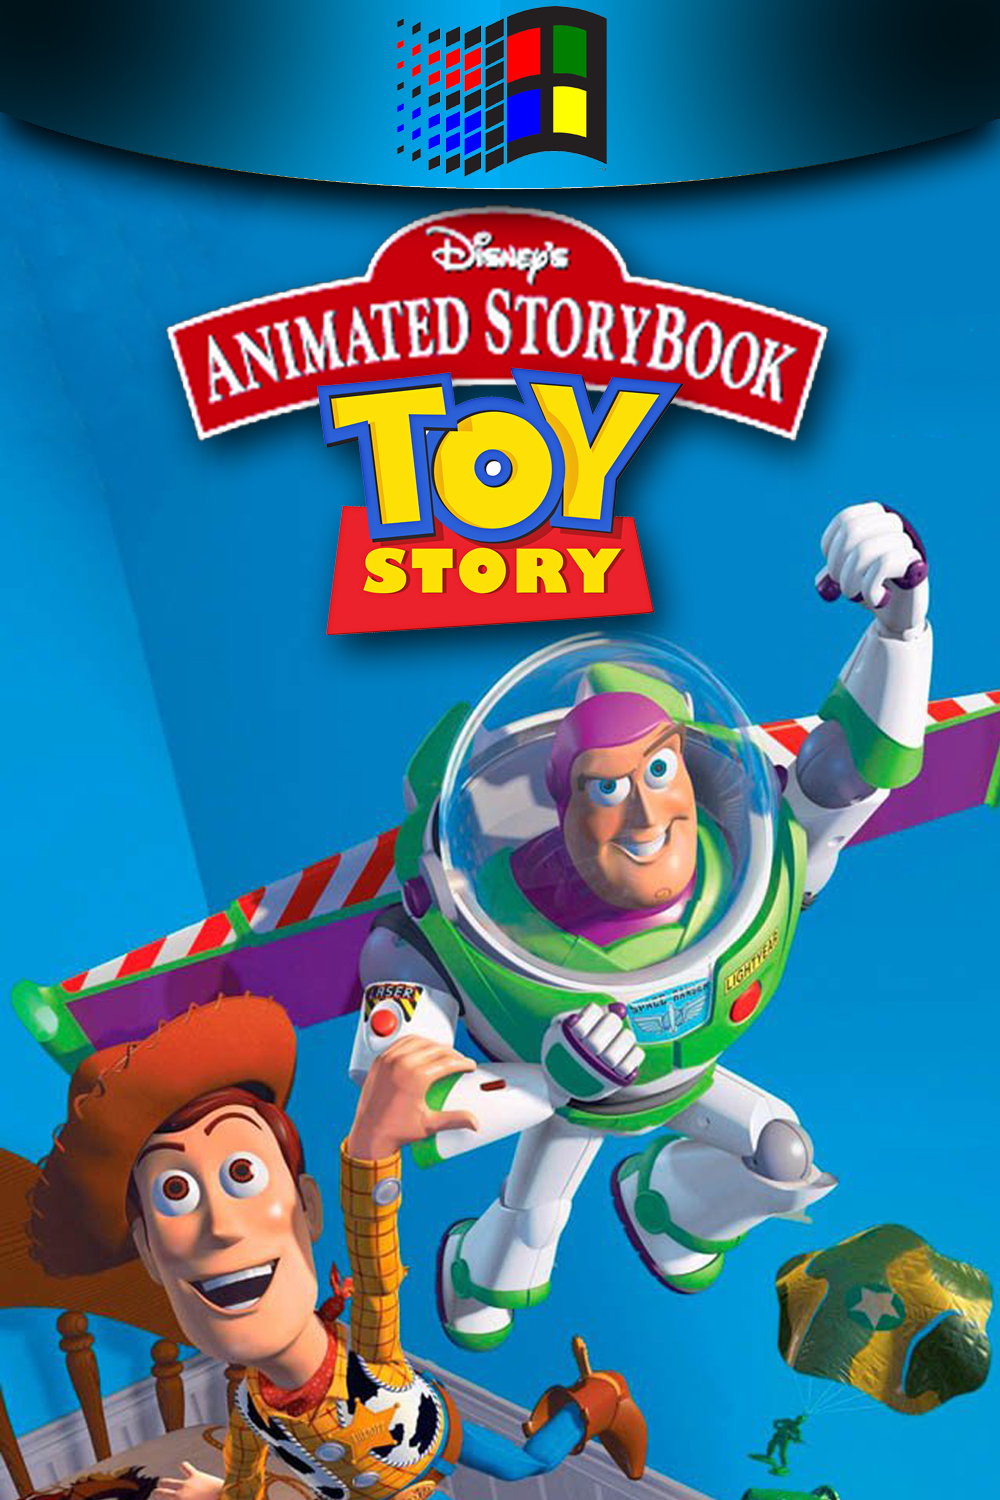 Toy Story Cracked Magazine: The Collection Chamber: DISNEY'S ANIMATED STORYBOOK: TOY STORY